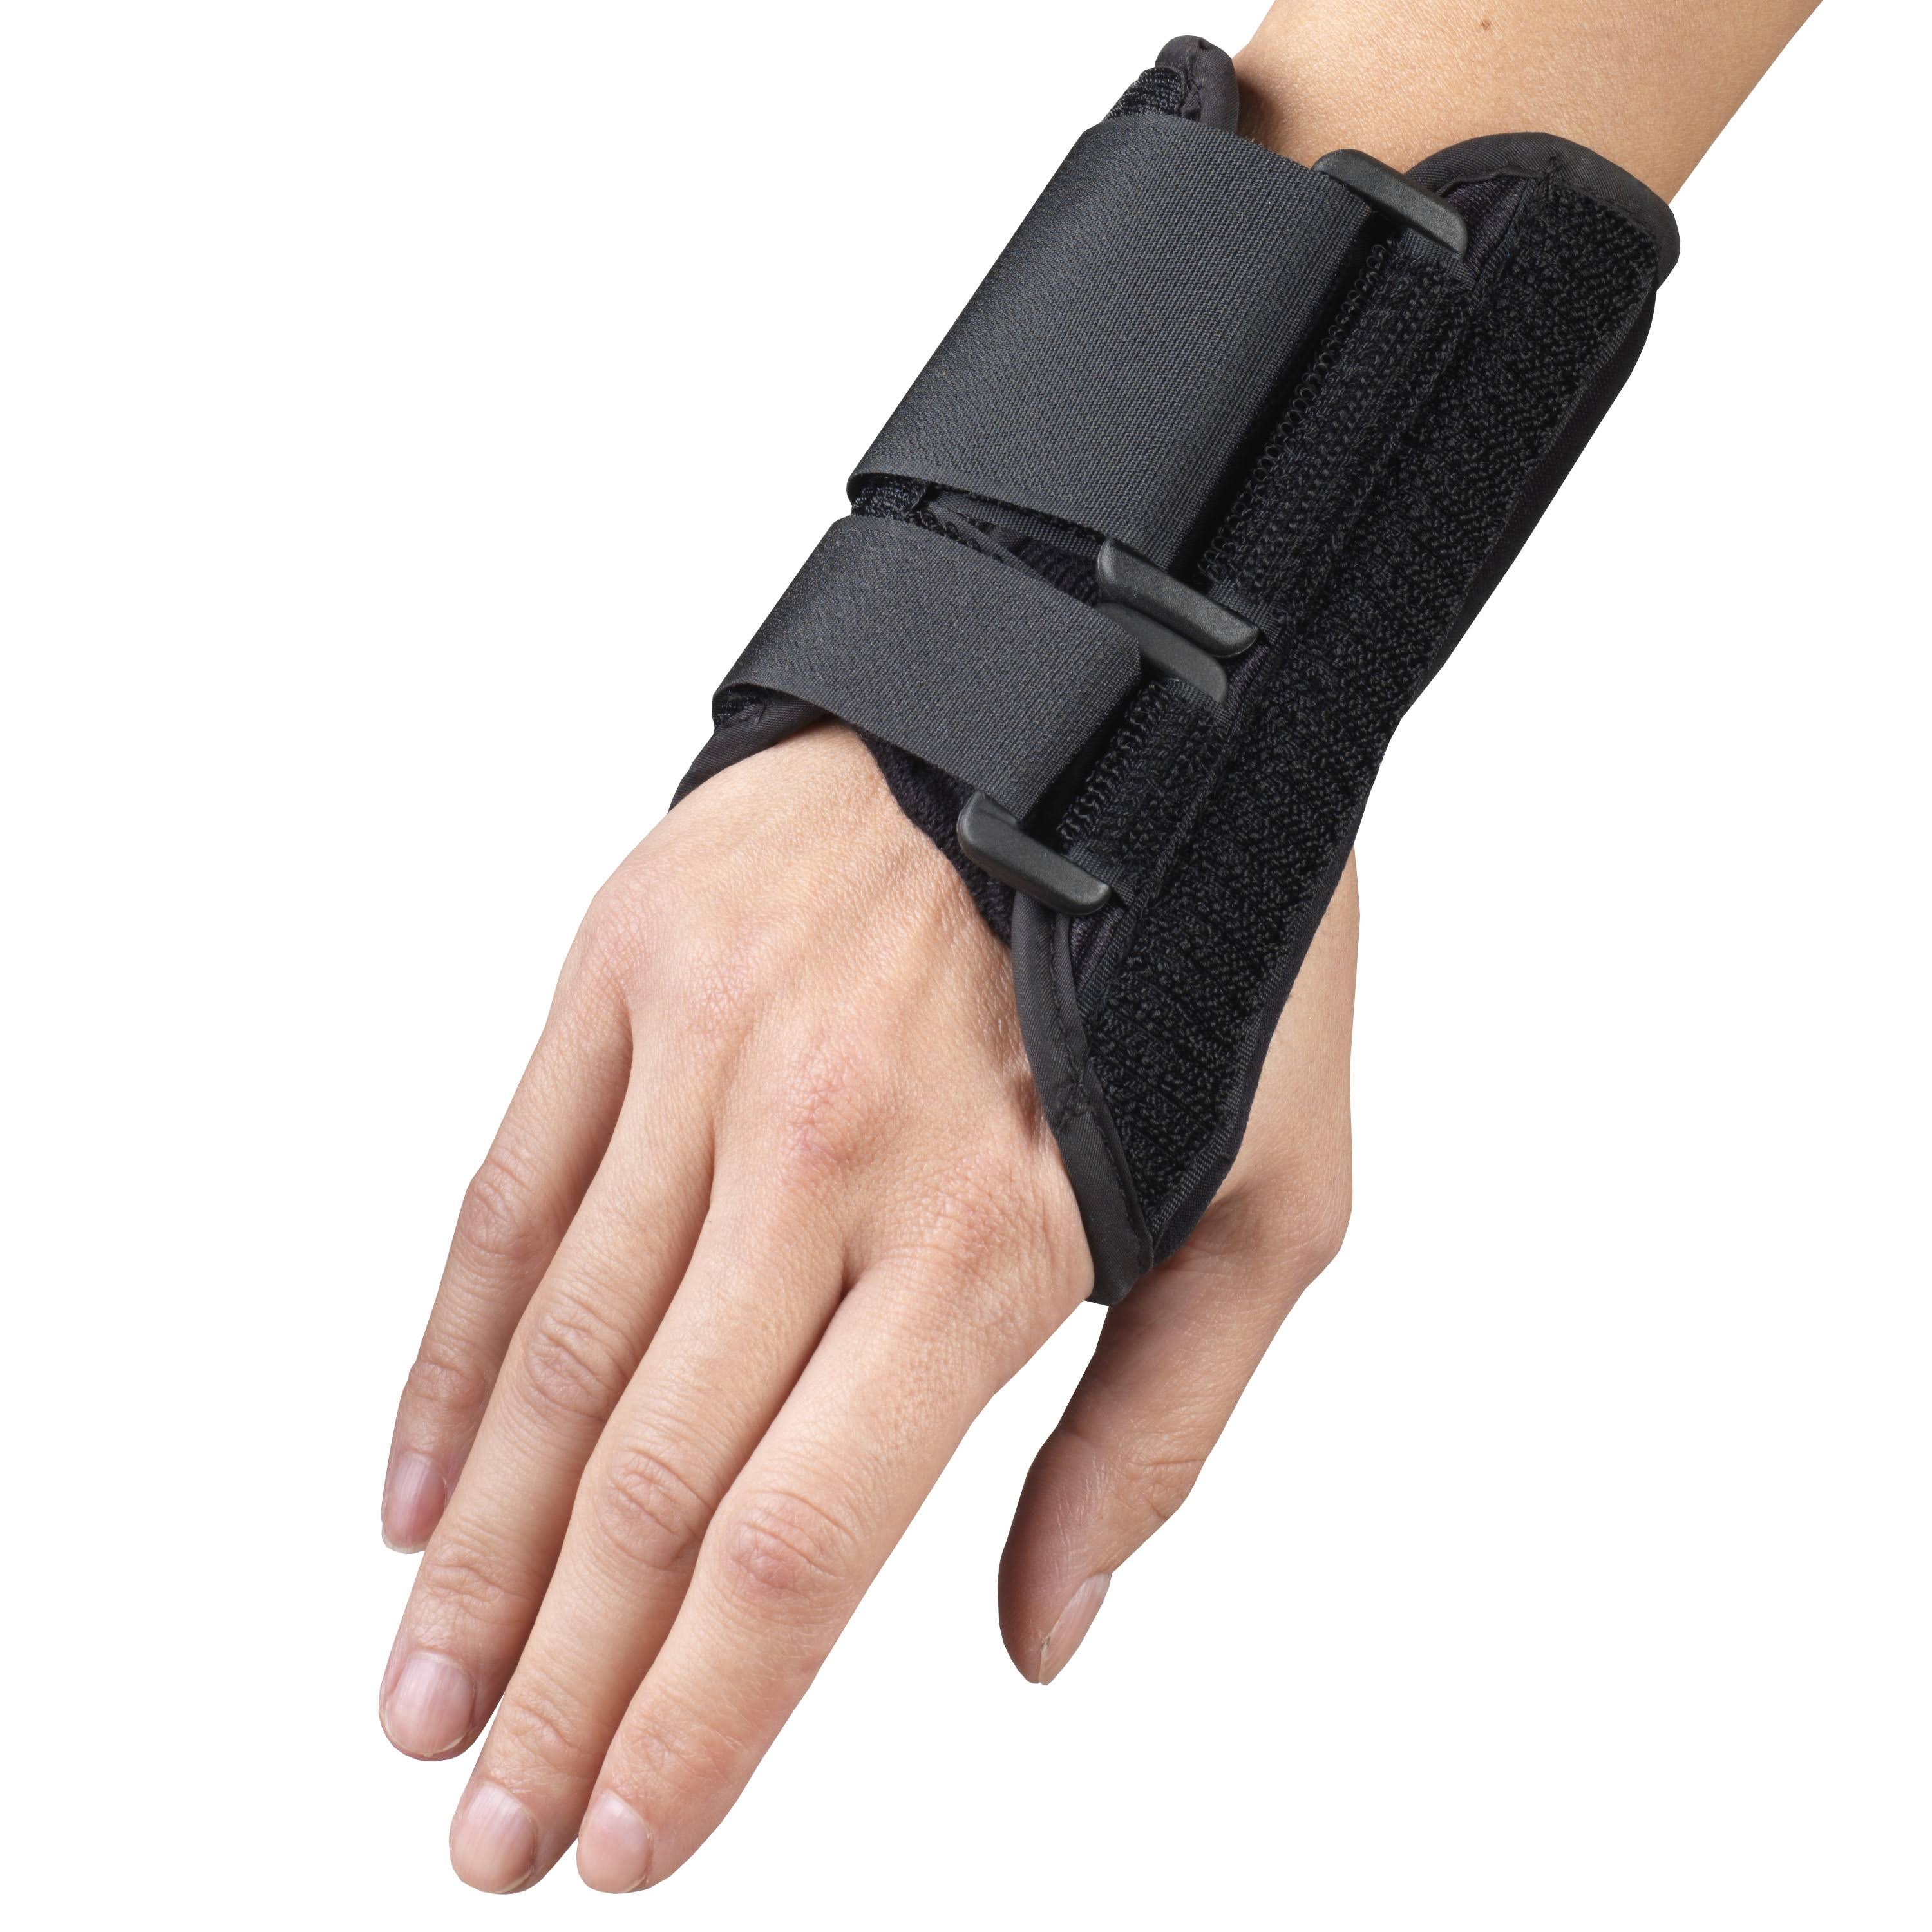 OTC 2082 Wrist Splint - Black, Large, Right